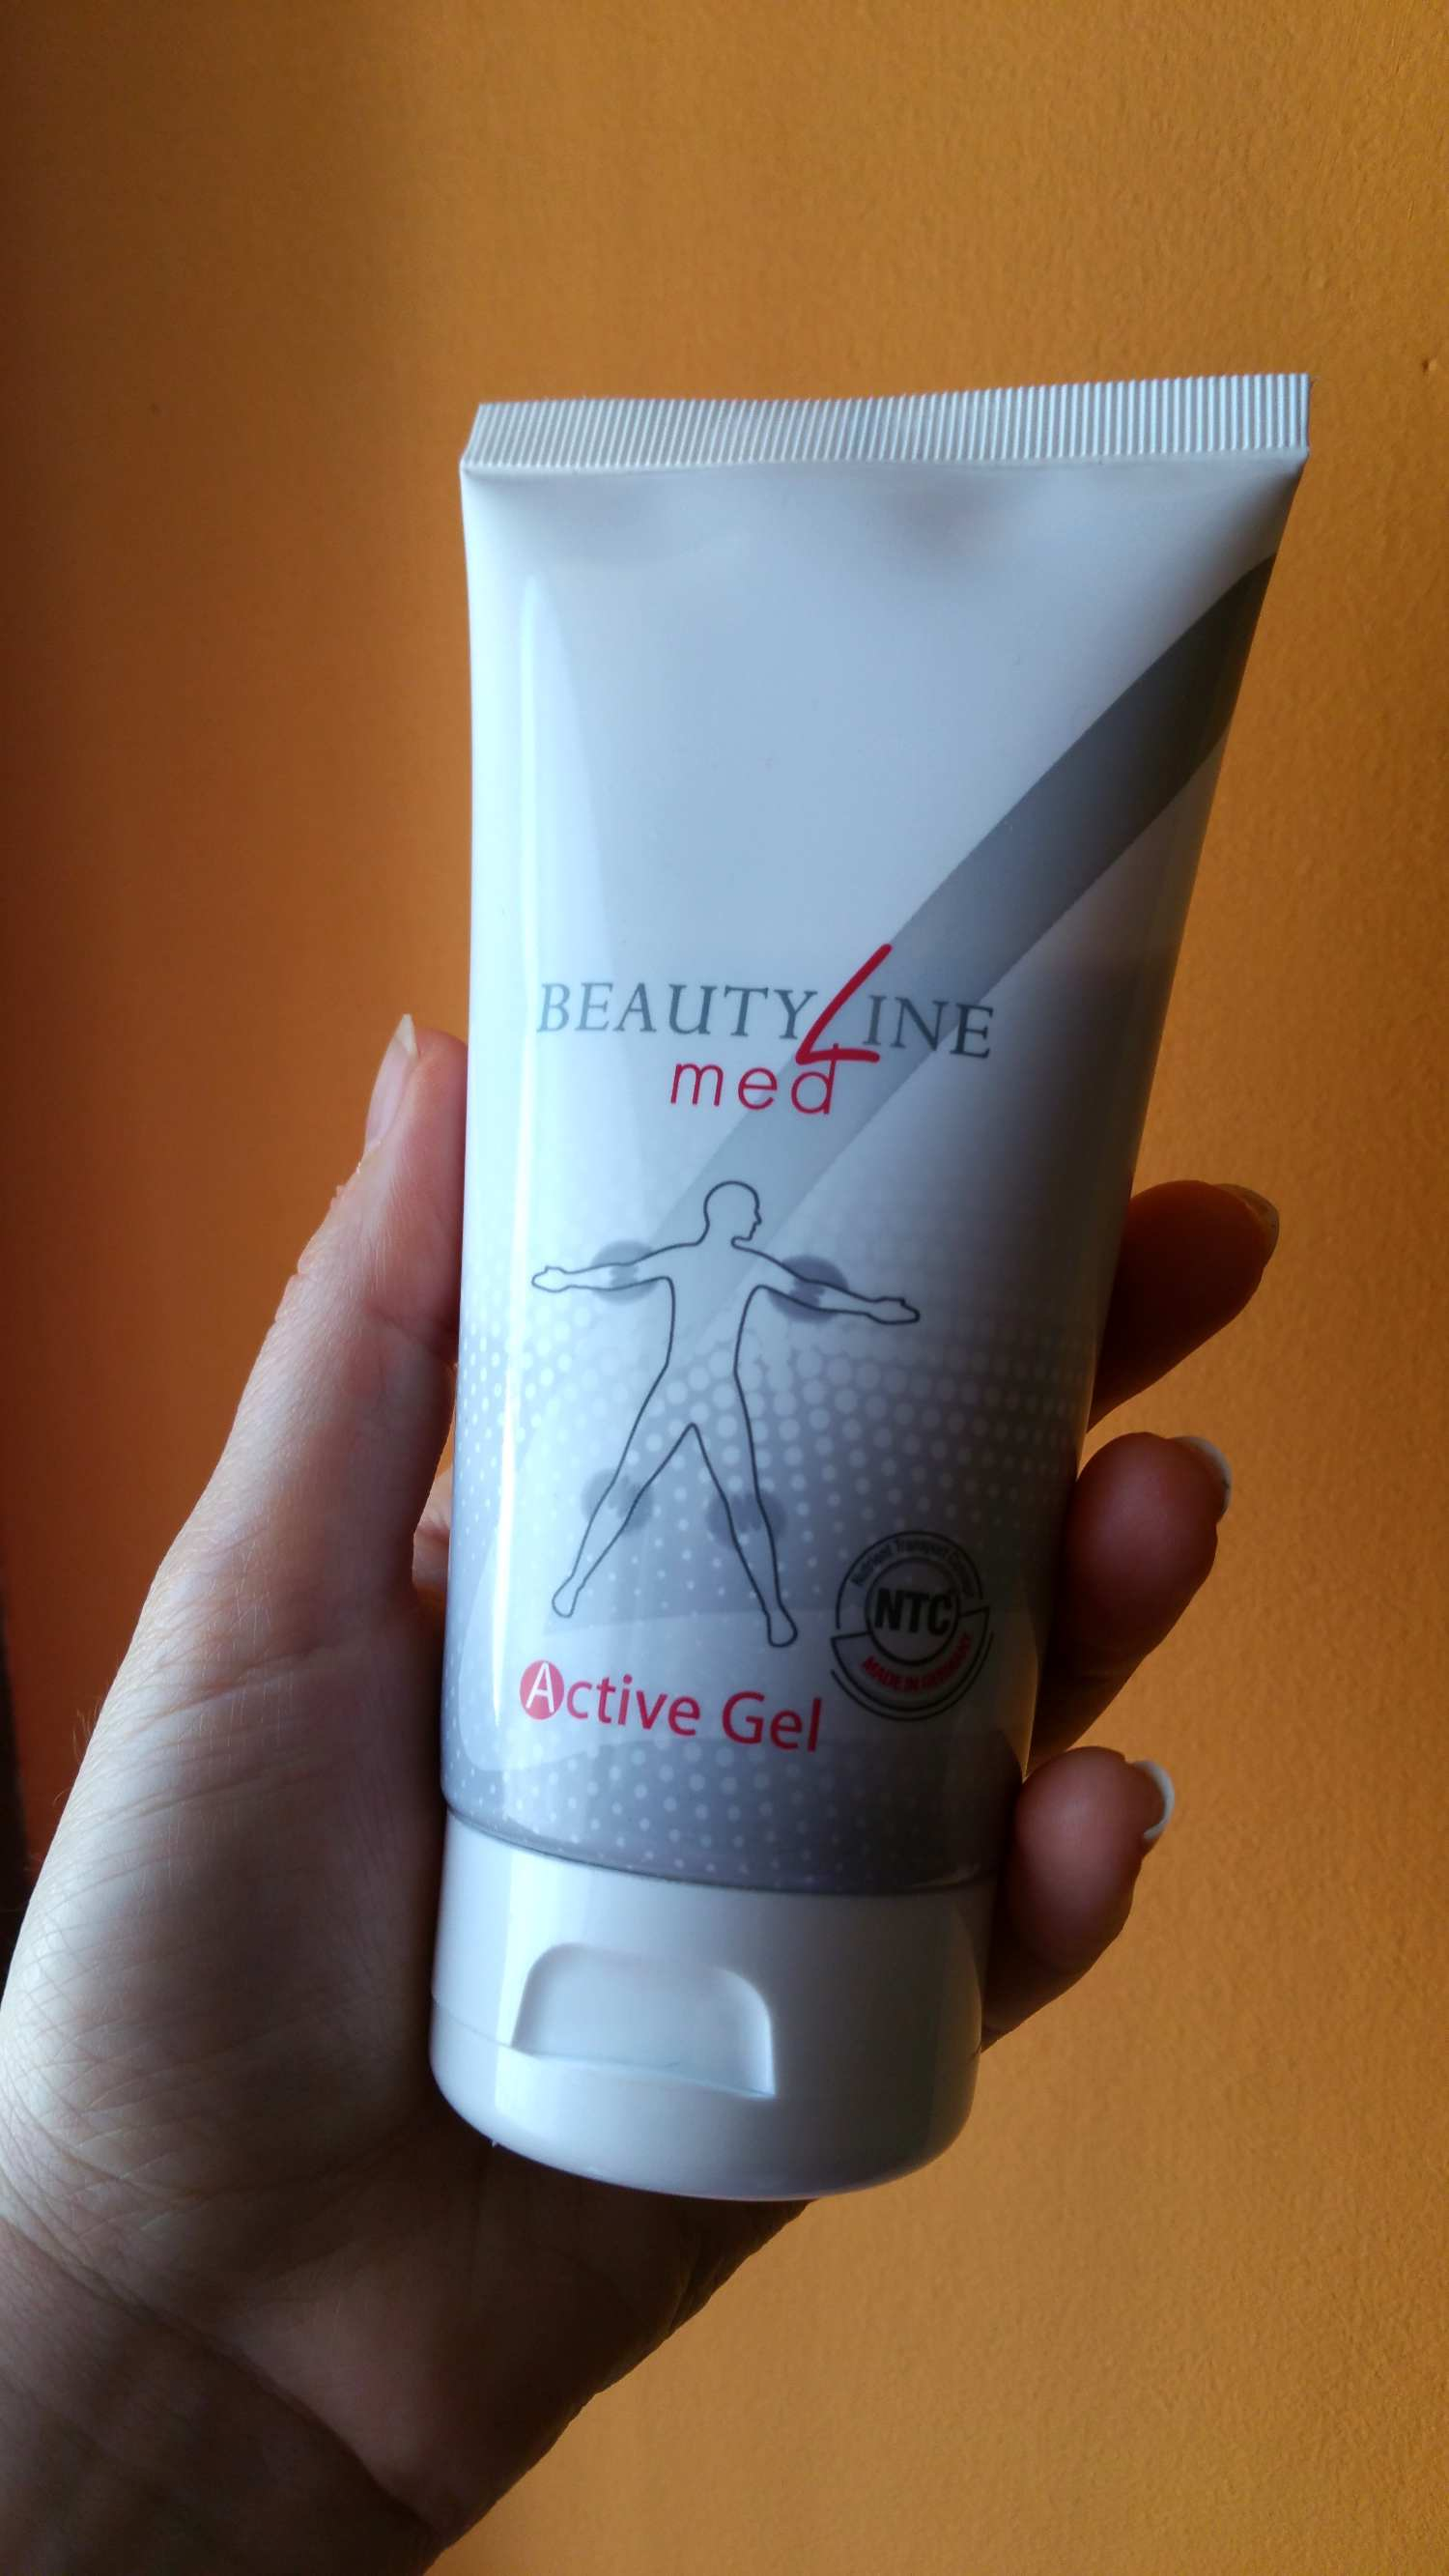 BeautyLine Med Active Gel